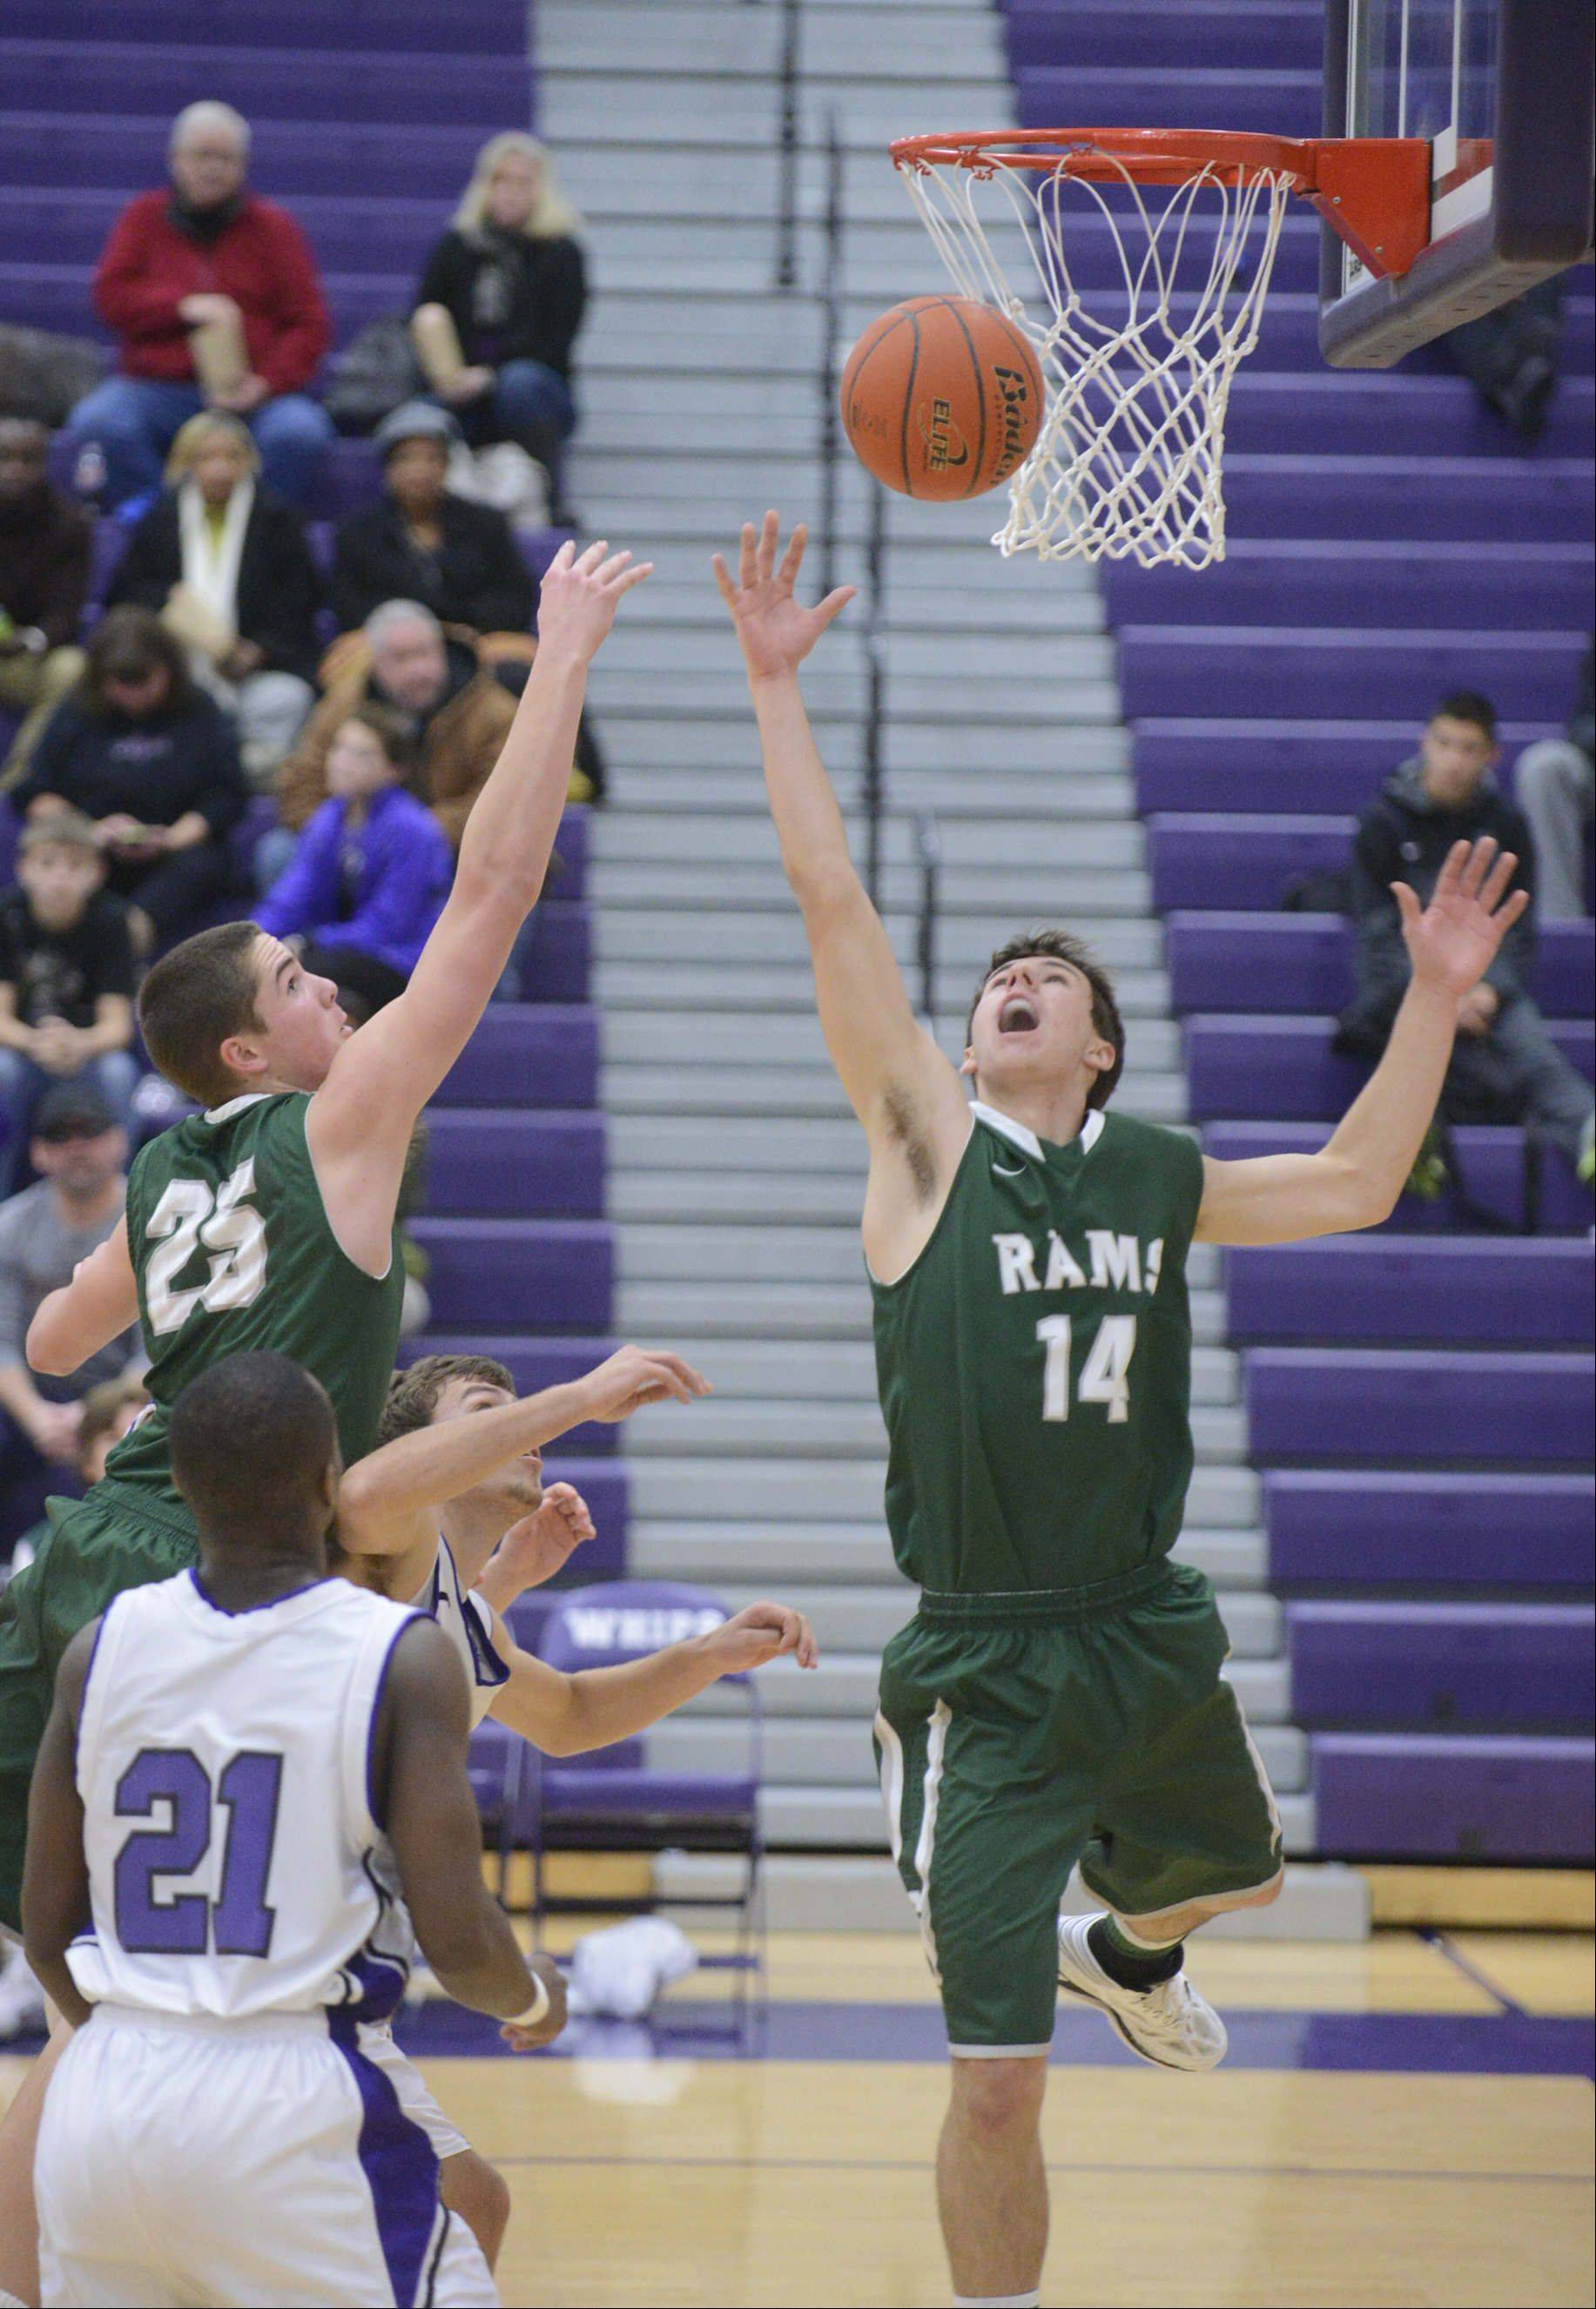 Images from the Grayslake Central vs. Hampshire boys basketball game Saturday, January 4, 2014.